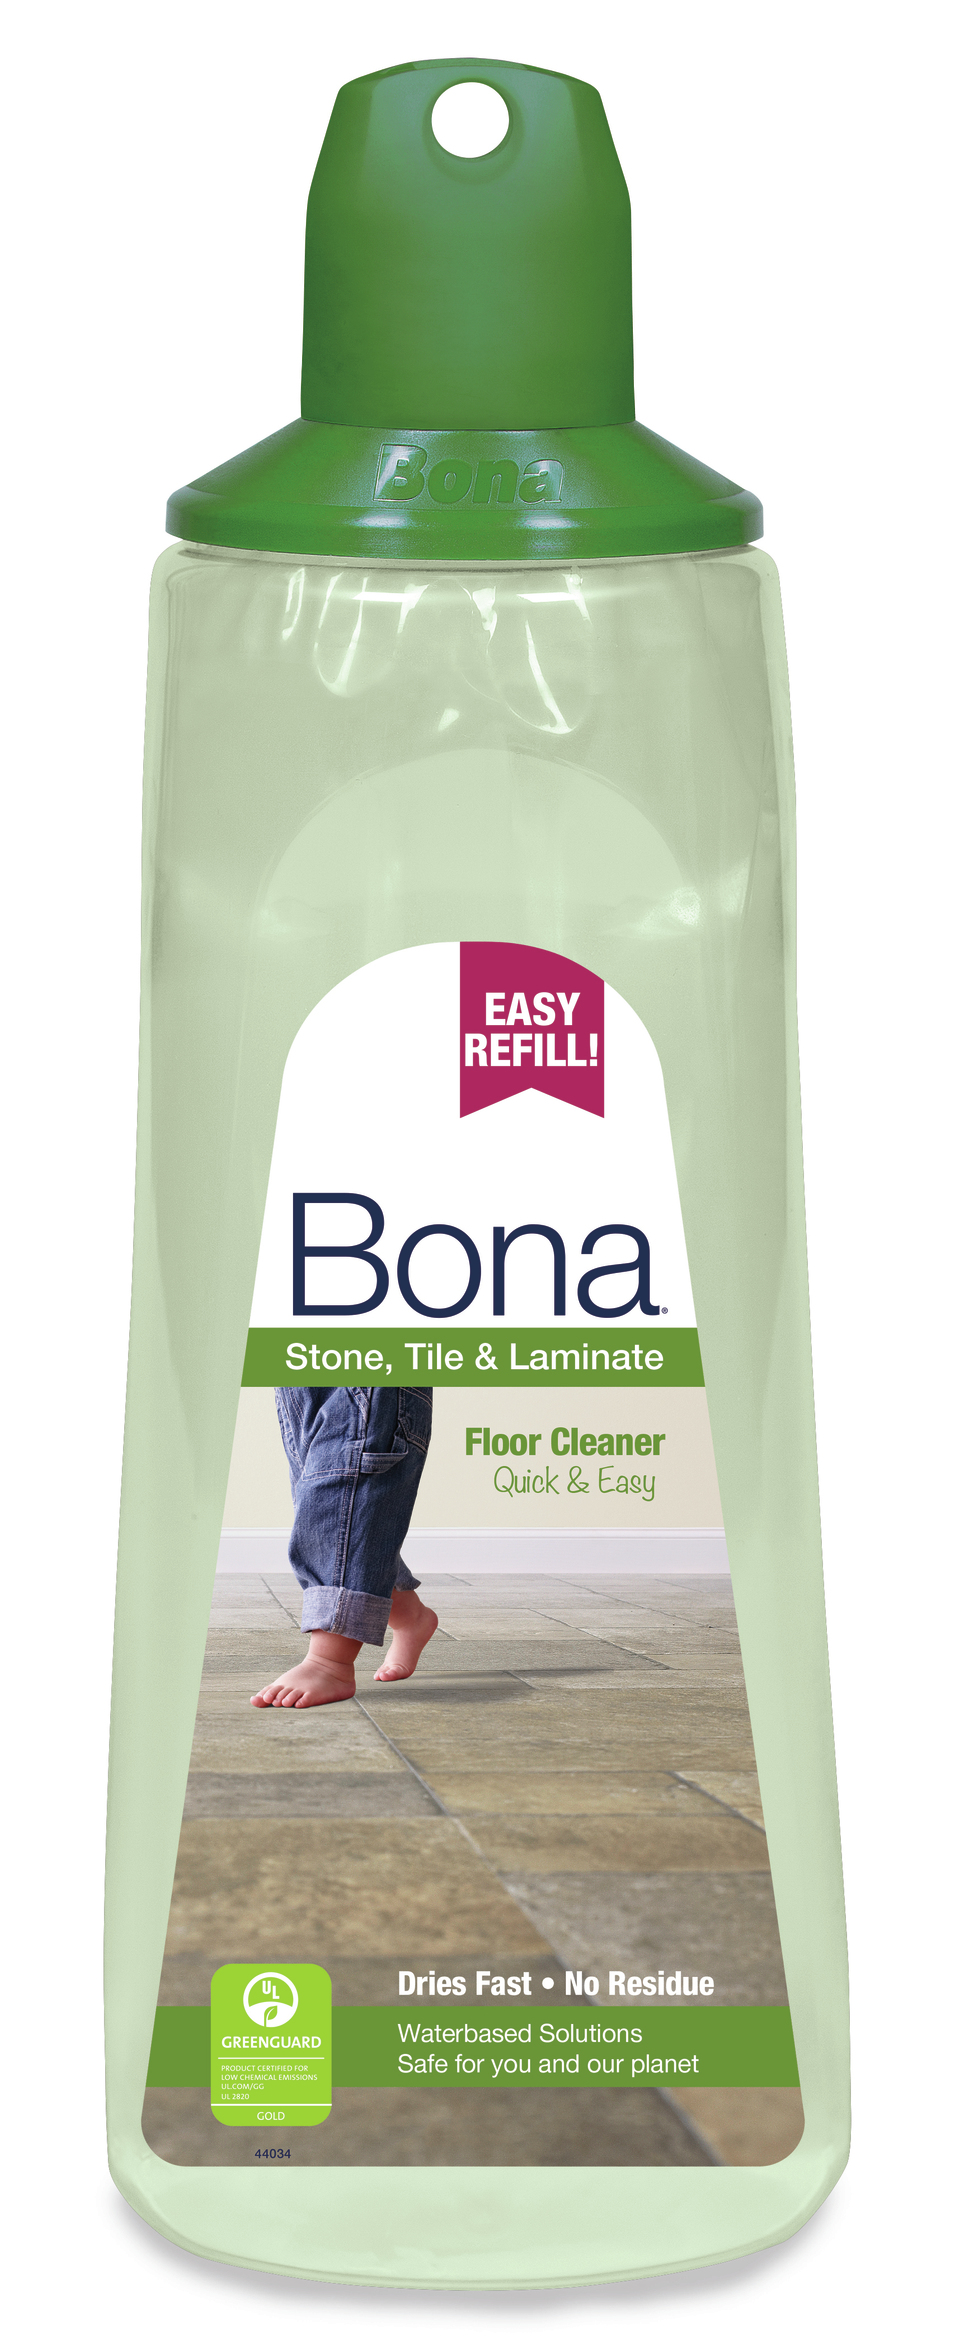 Next Generation Bona Cartridge